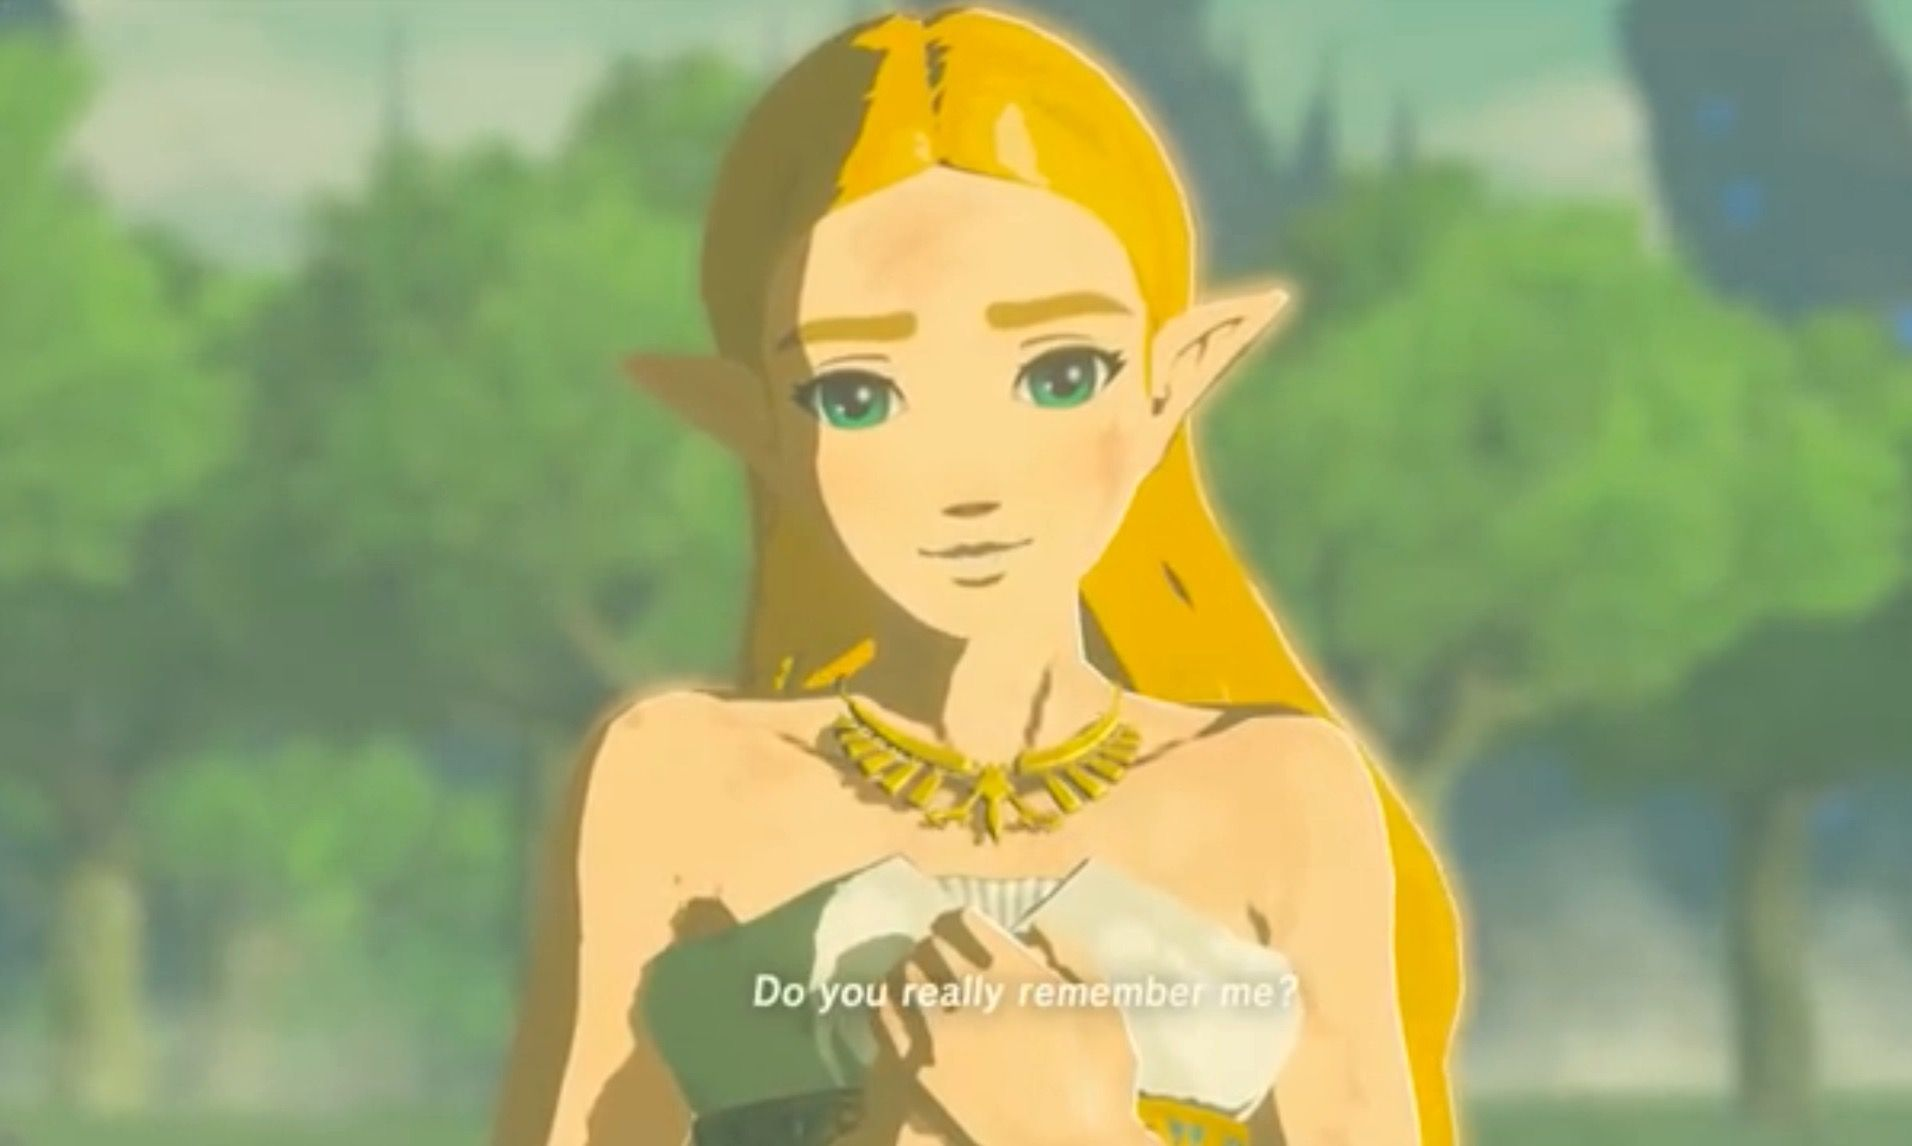 In Most Of Breath Of The Wild The Main Quest Comes To Feel As A Macguffin As Characterized By Alfred Hitchcock Legend Of Zelda Breath Of The Wild Zelda Art